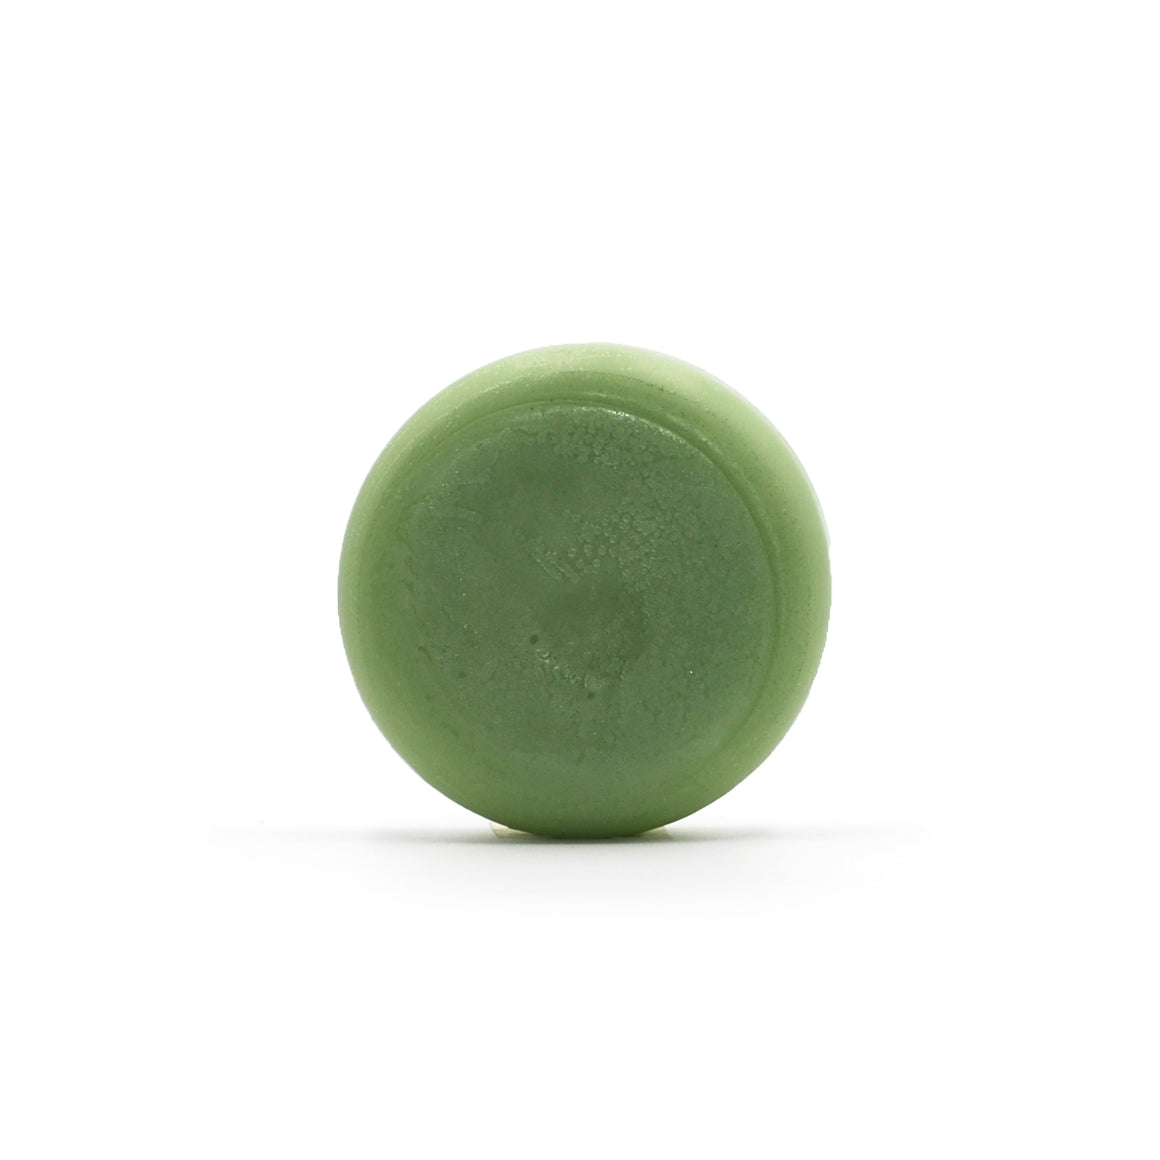 Conditioner Bar - Eucalyptus Mint